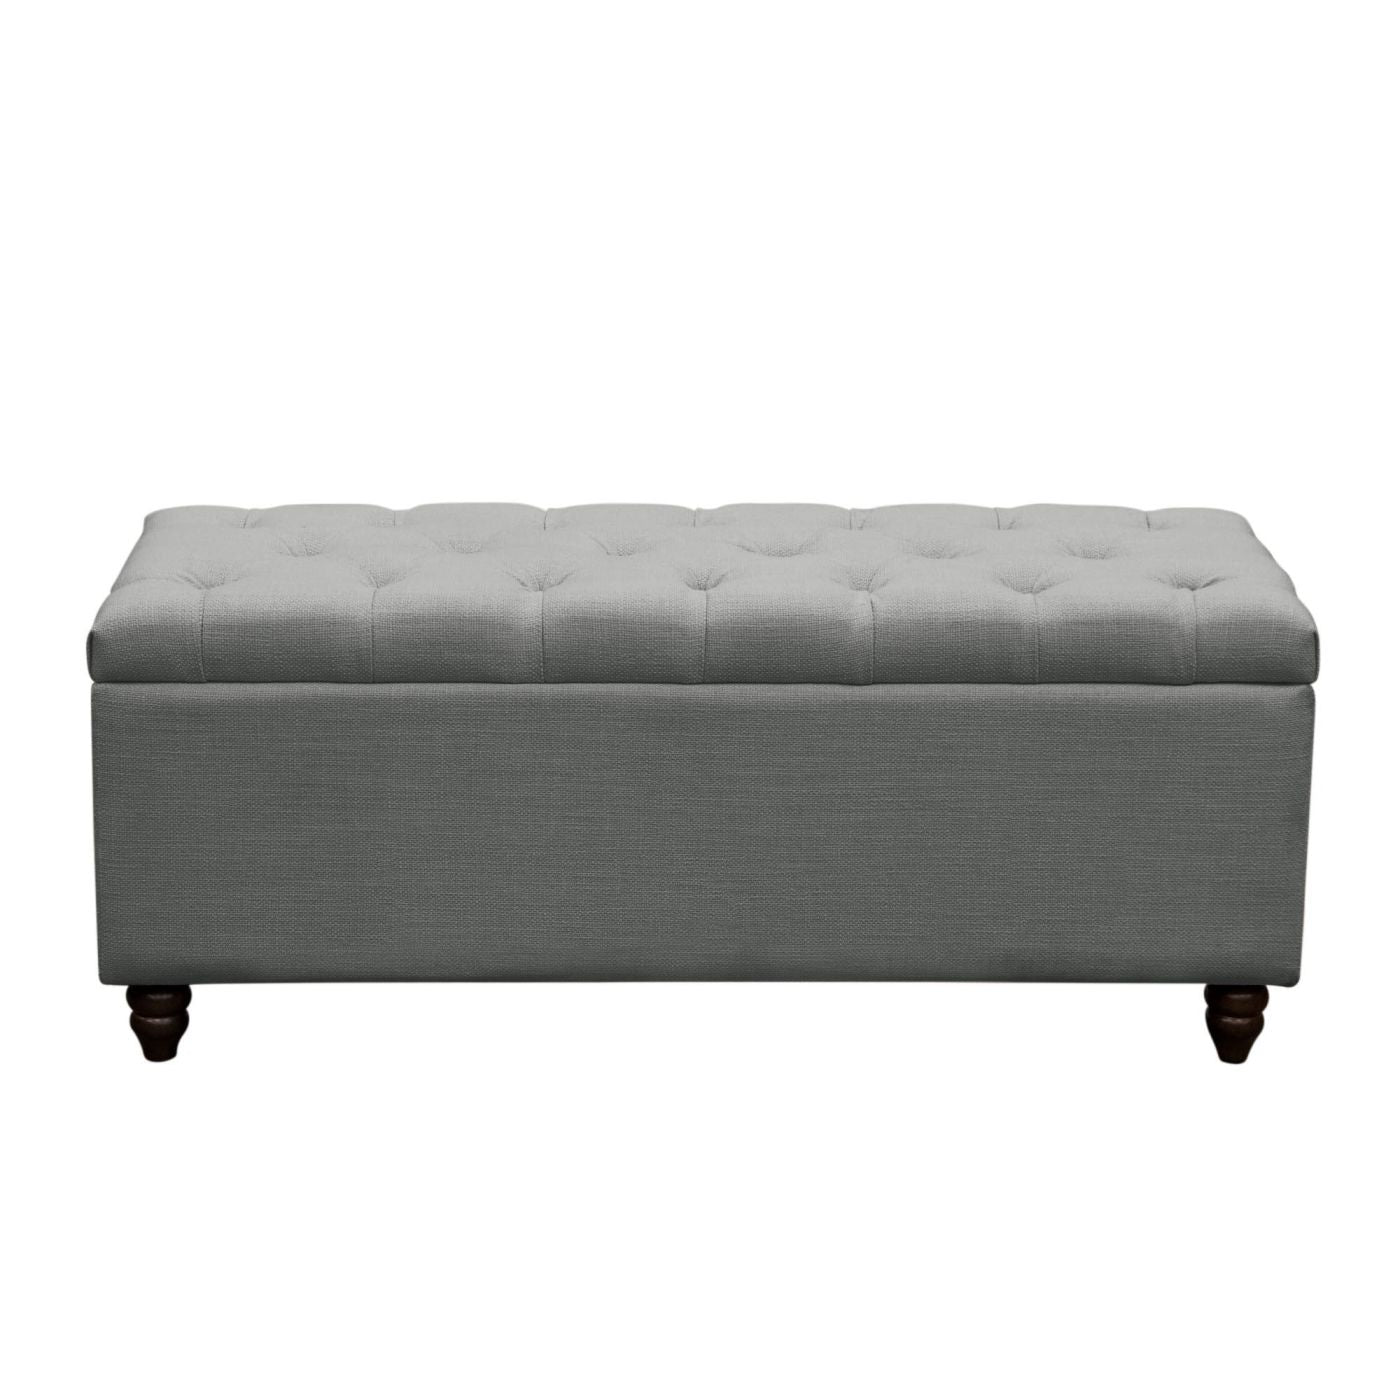 Remarkable Buy Diamond Sofa Parkavetrgr Park Ave Tufted Lift Top Storage Trunk Grey Linen At Contemporary Furniture Warehouse Squirreltailoven Fun Painted Chair Ideas Images Squirreltailovenorg